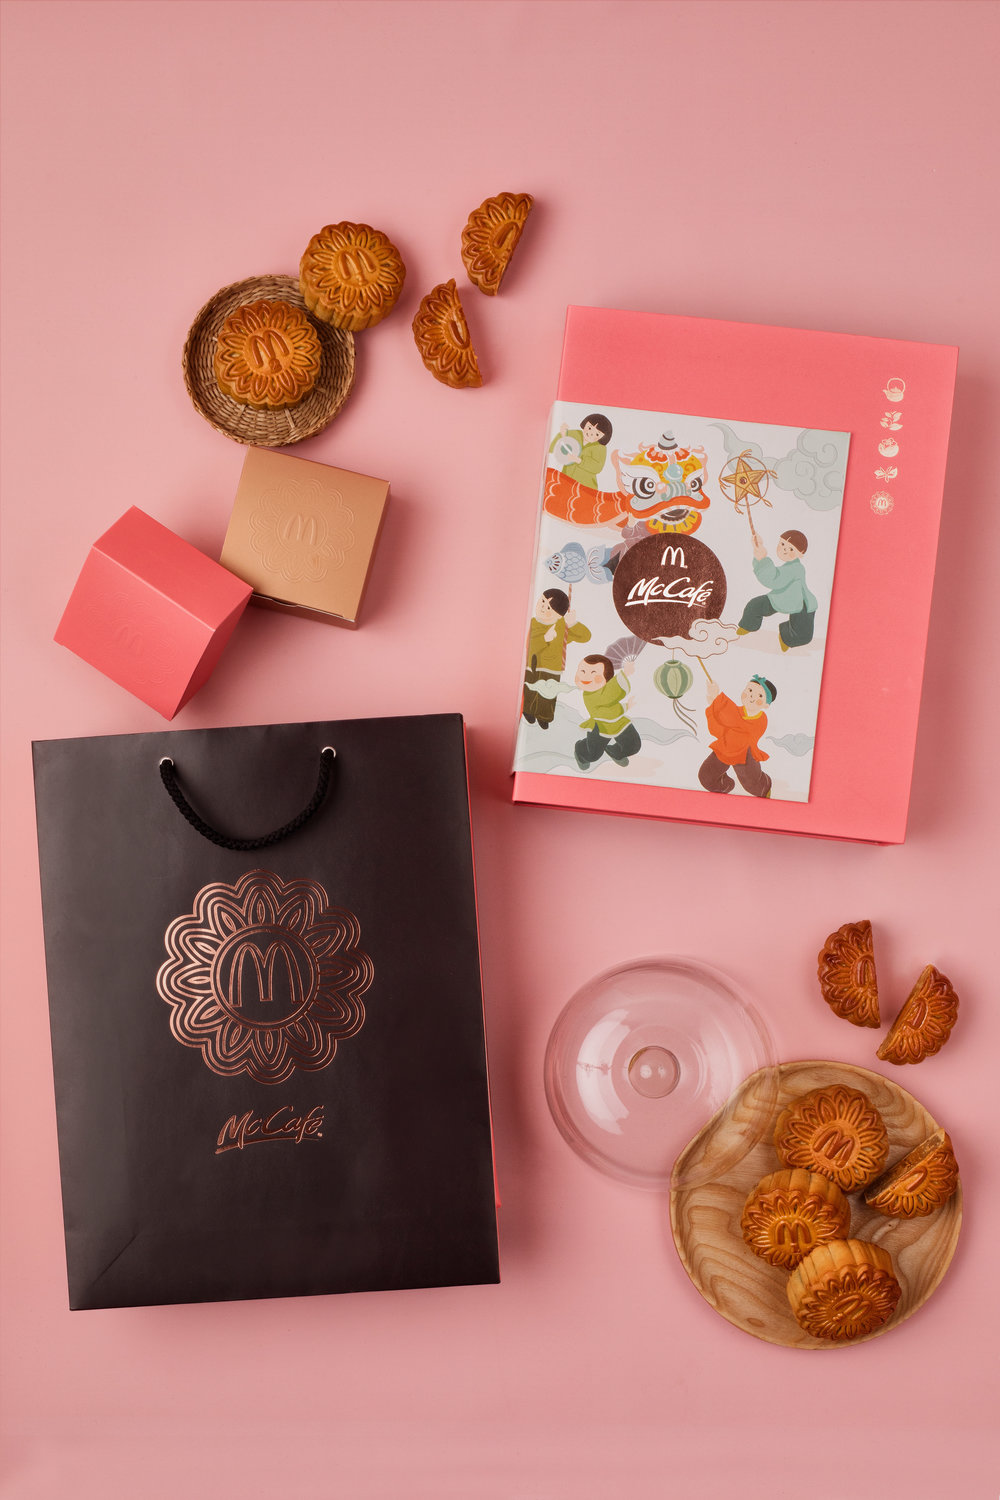 McDonald's Vietnam Mooncake Design 2018 photography by thatsluminous foodphotogrpaher foodphotography hochiminh vietnam packaging photography product photography singapore